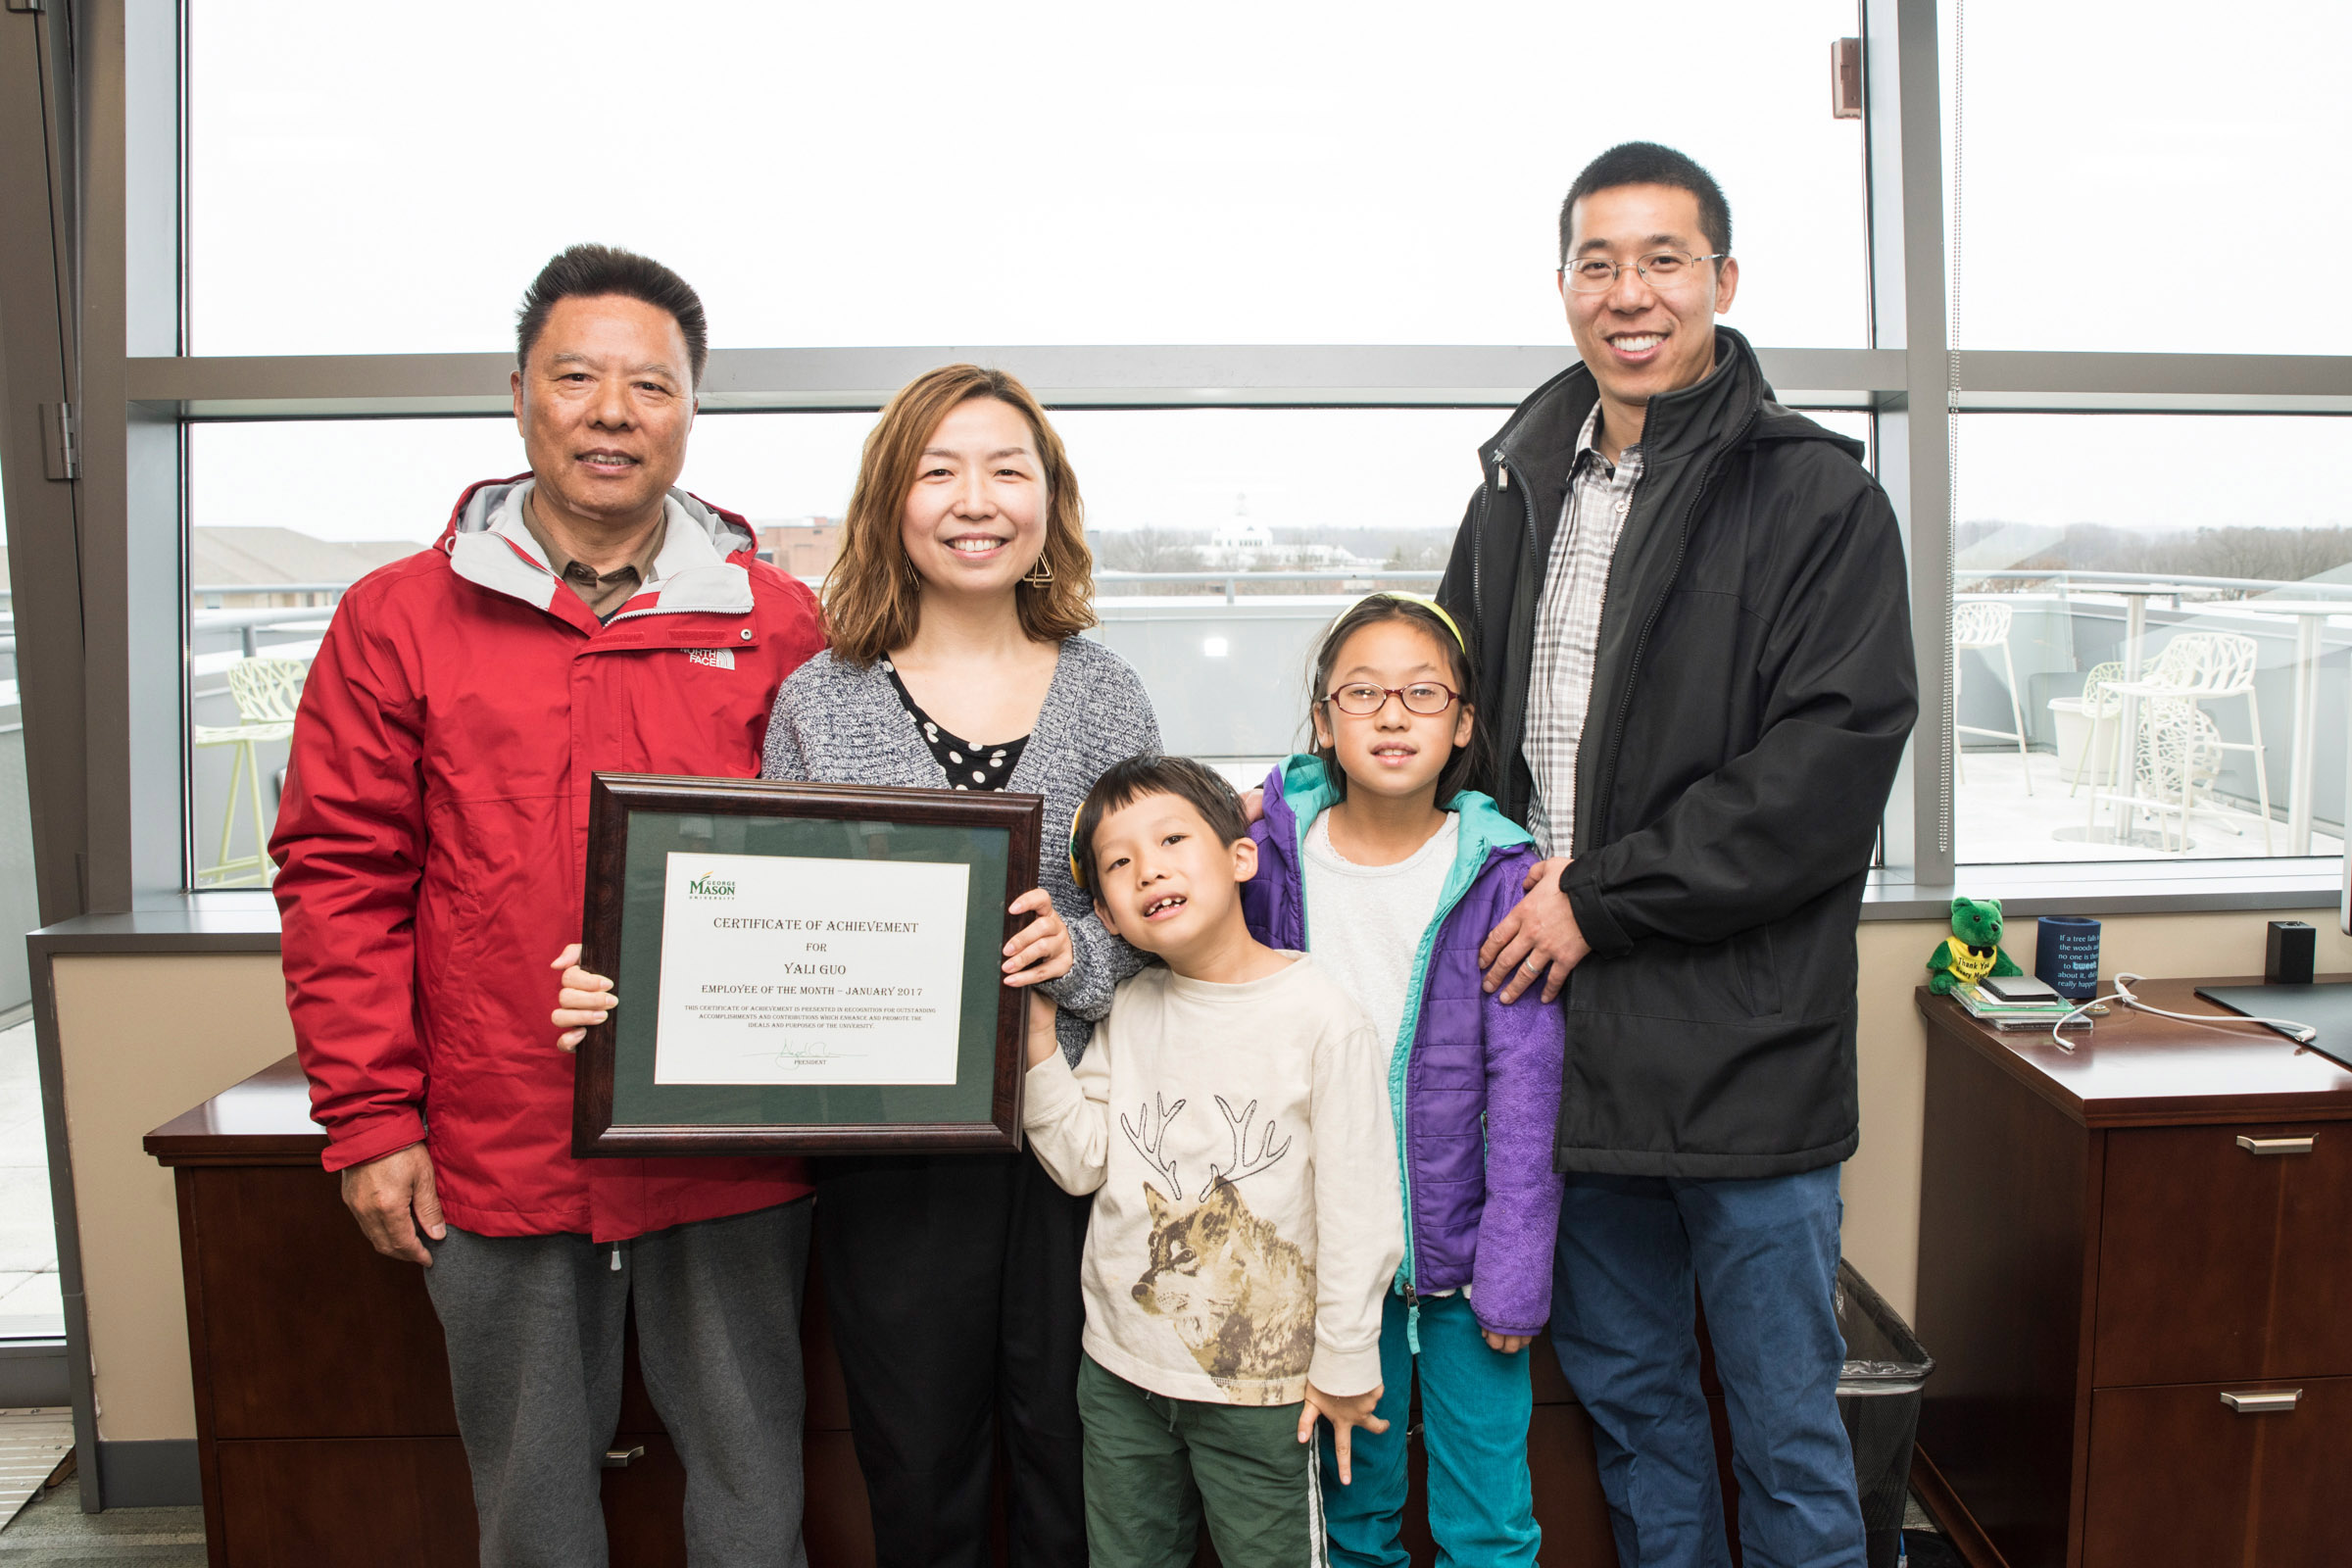 Yali Guo and her family pose with her Employee of the Month award